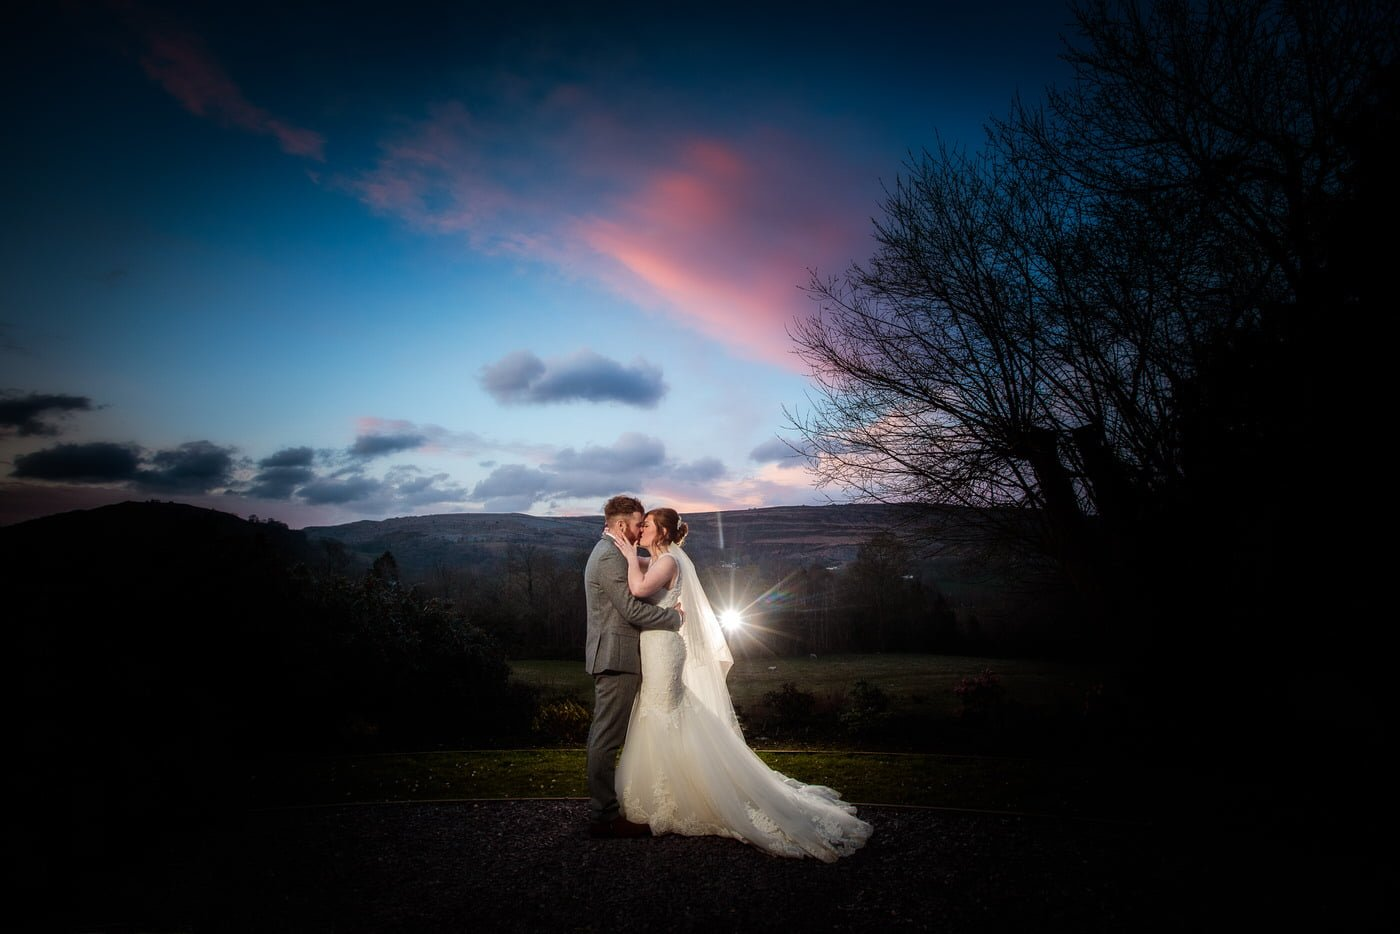 at a Tyn Dwr Hall Wedding the bride and groom take time out to enjoy the sunset and share a kiss